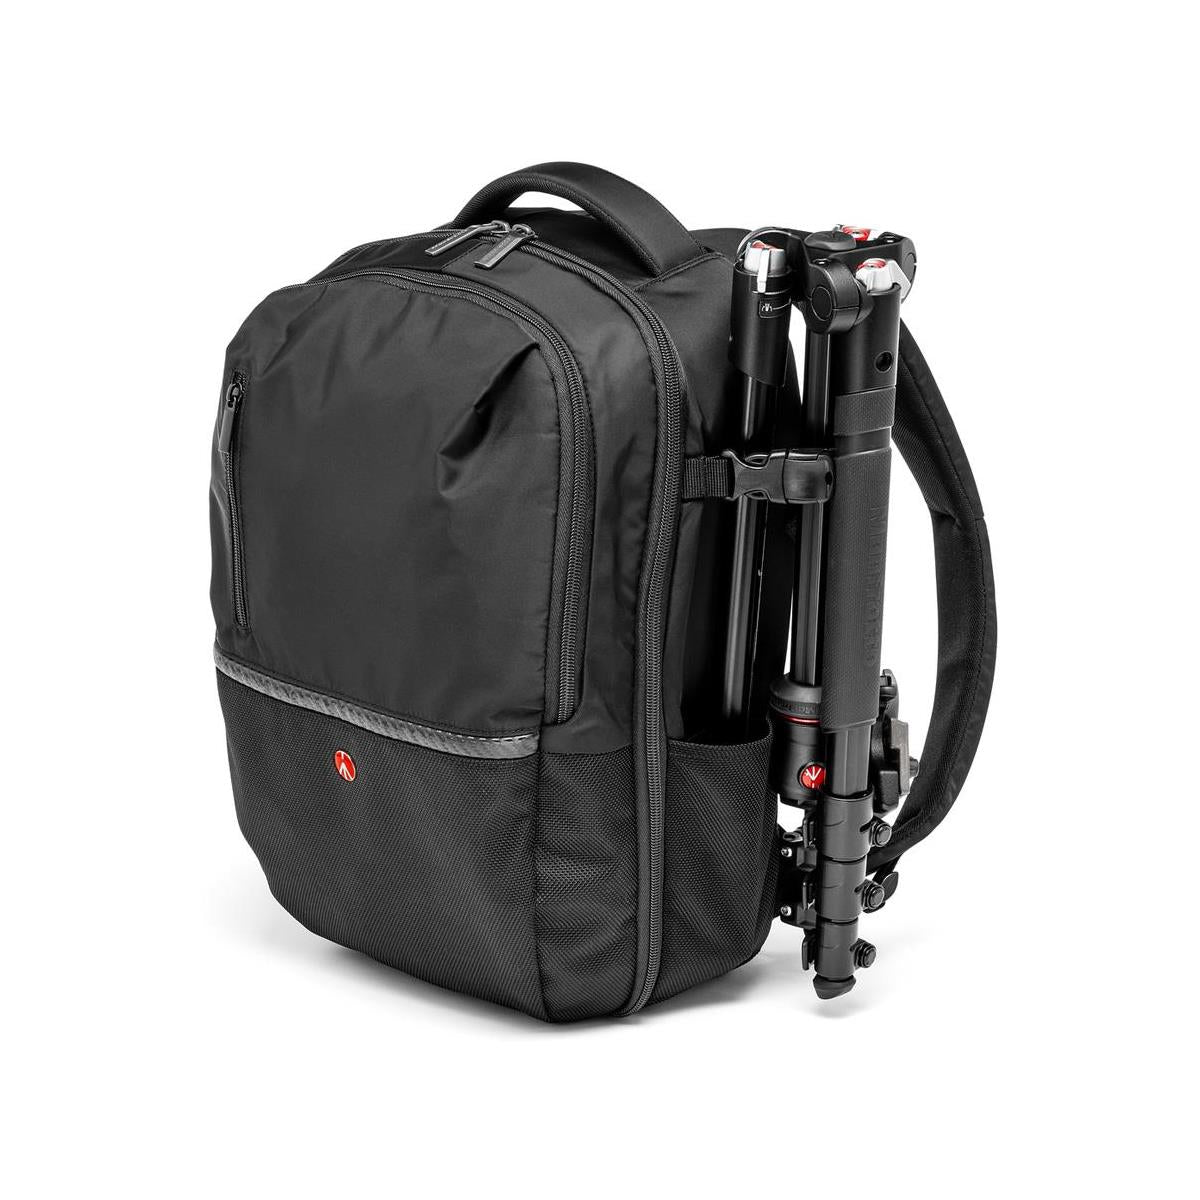 Manfrotto Advanced Gear Backpack, Large, Black